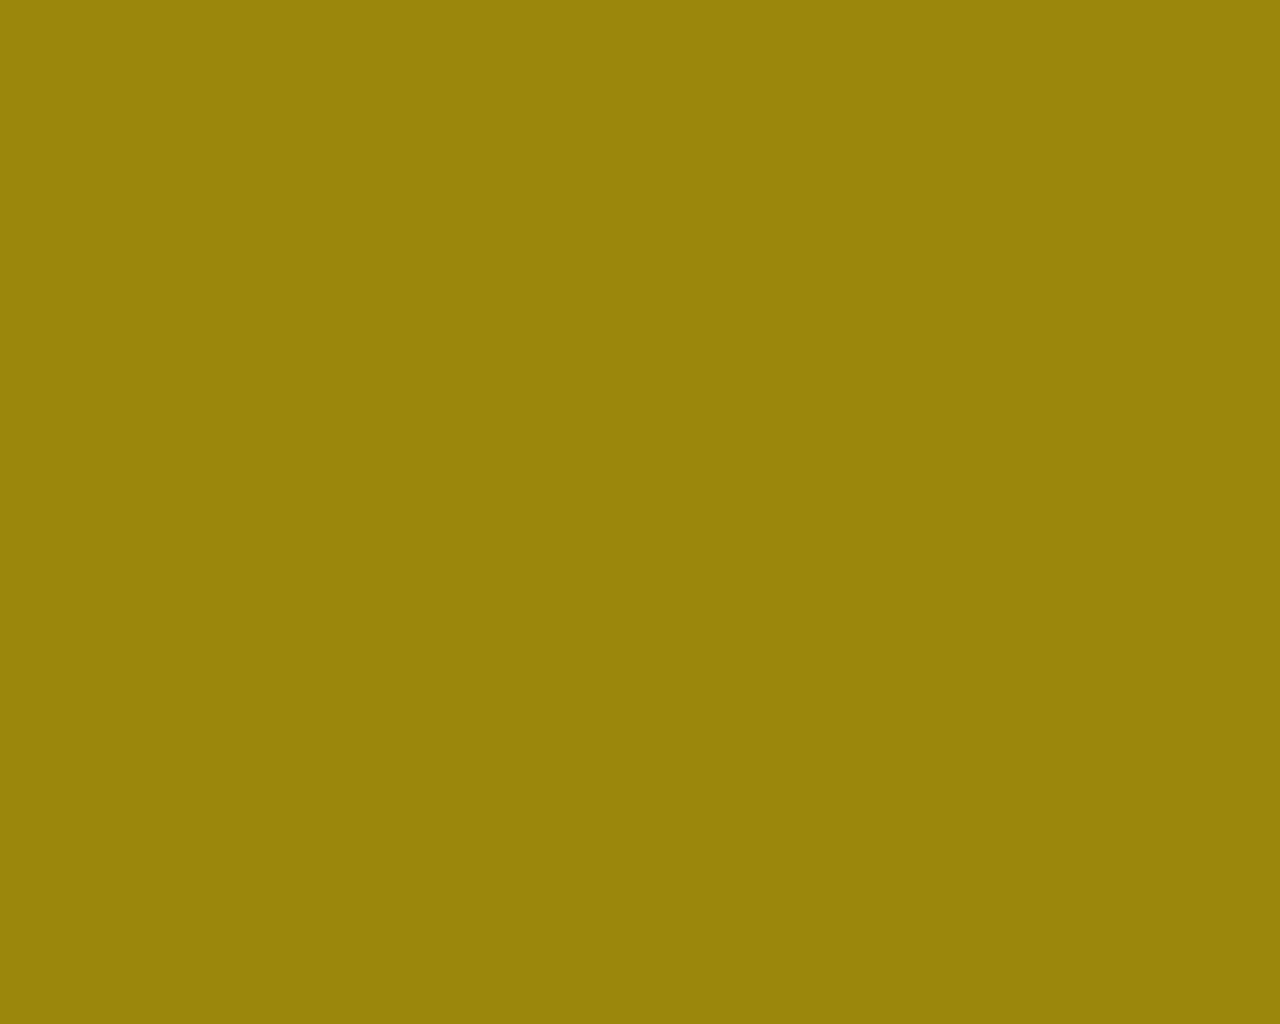 1280x1024 Dark Yellow Solid Color Background